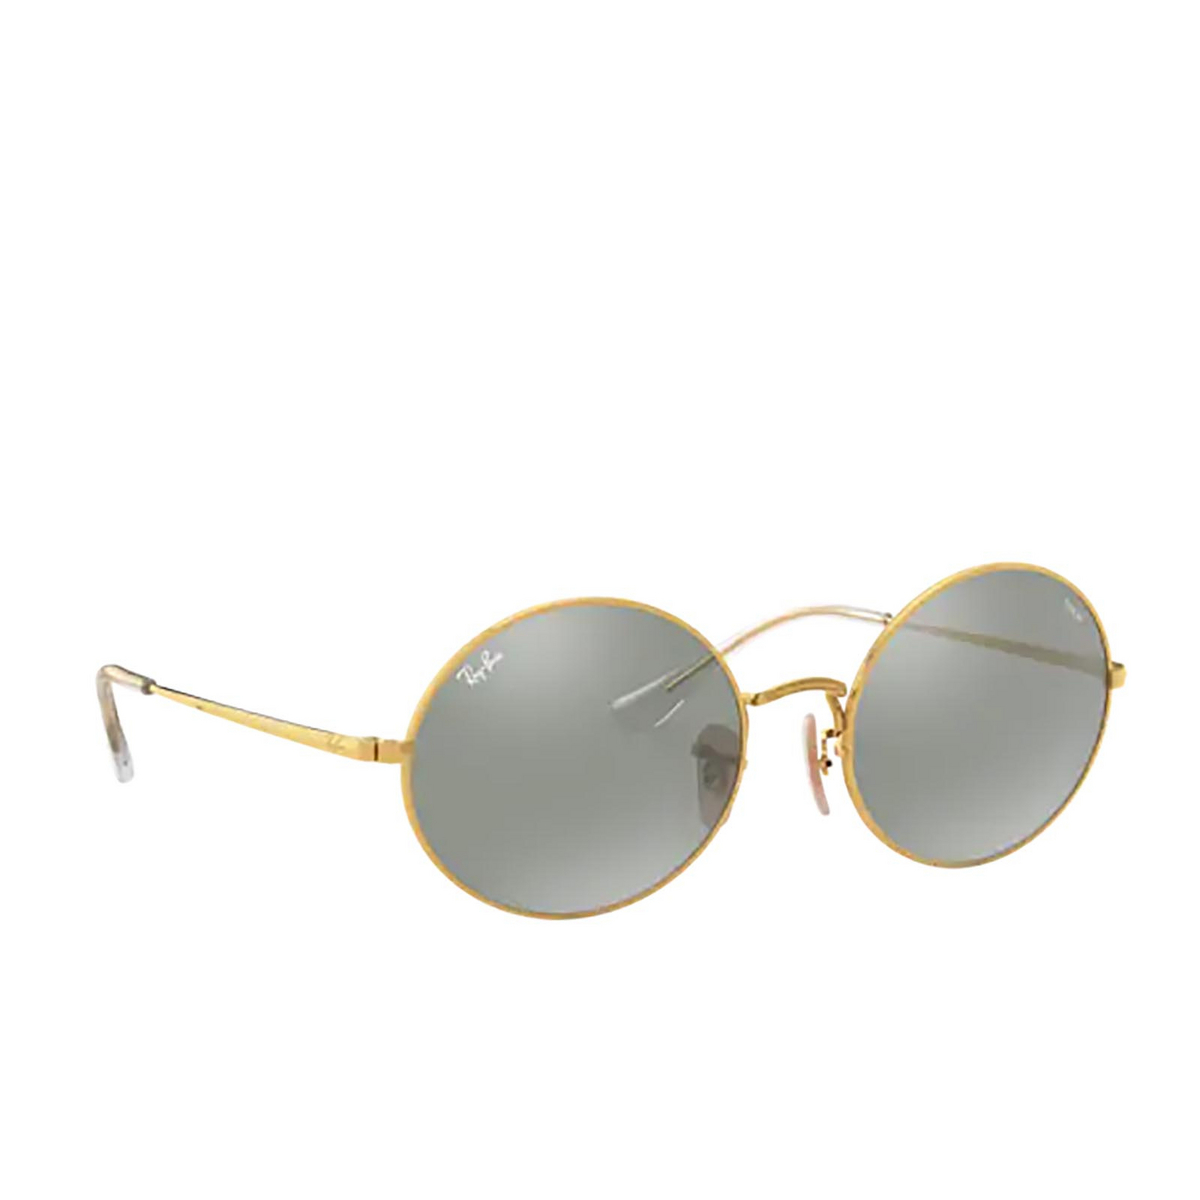 Ray-Ban® Oval Sunglasses: Oval RB1970 color Arista 001/W3 - three-quarters view.